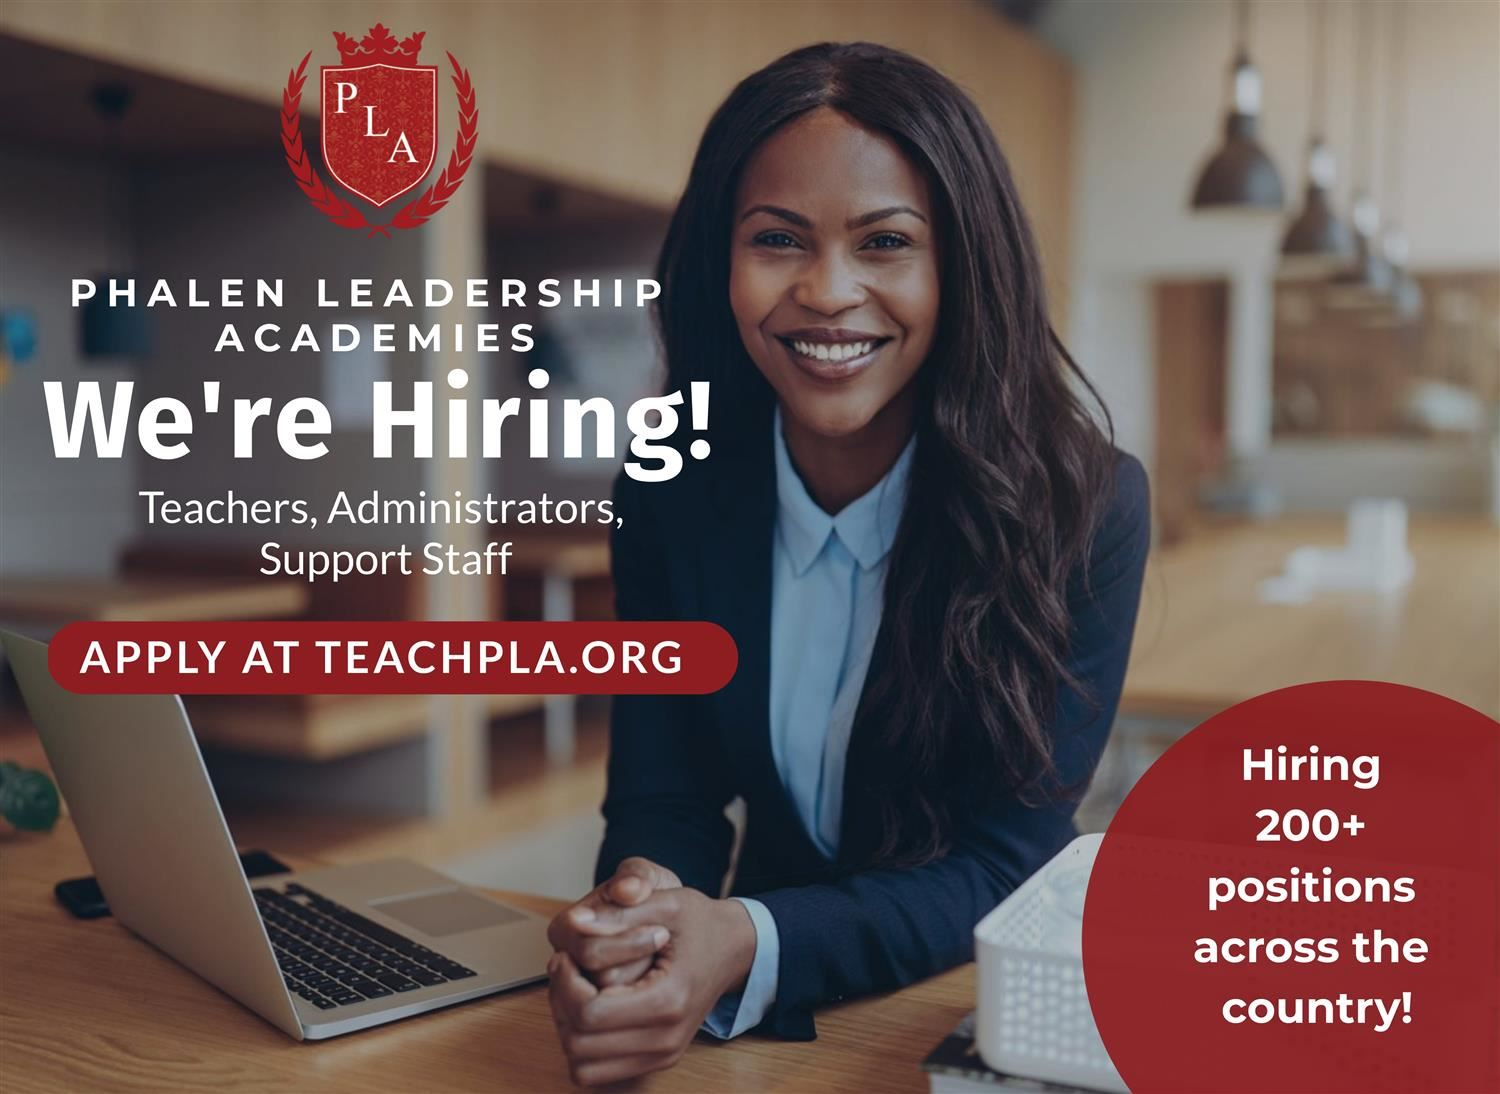 Phalen Leadership Academies Now Hiring